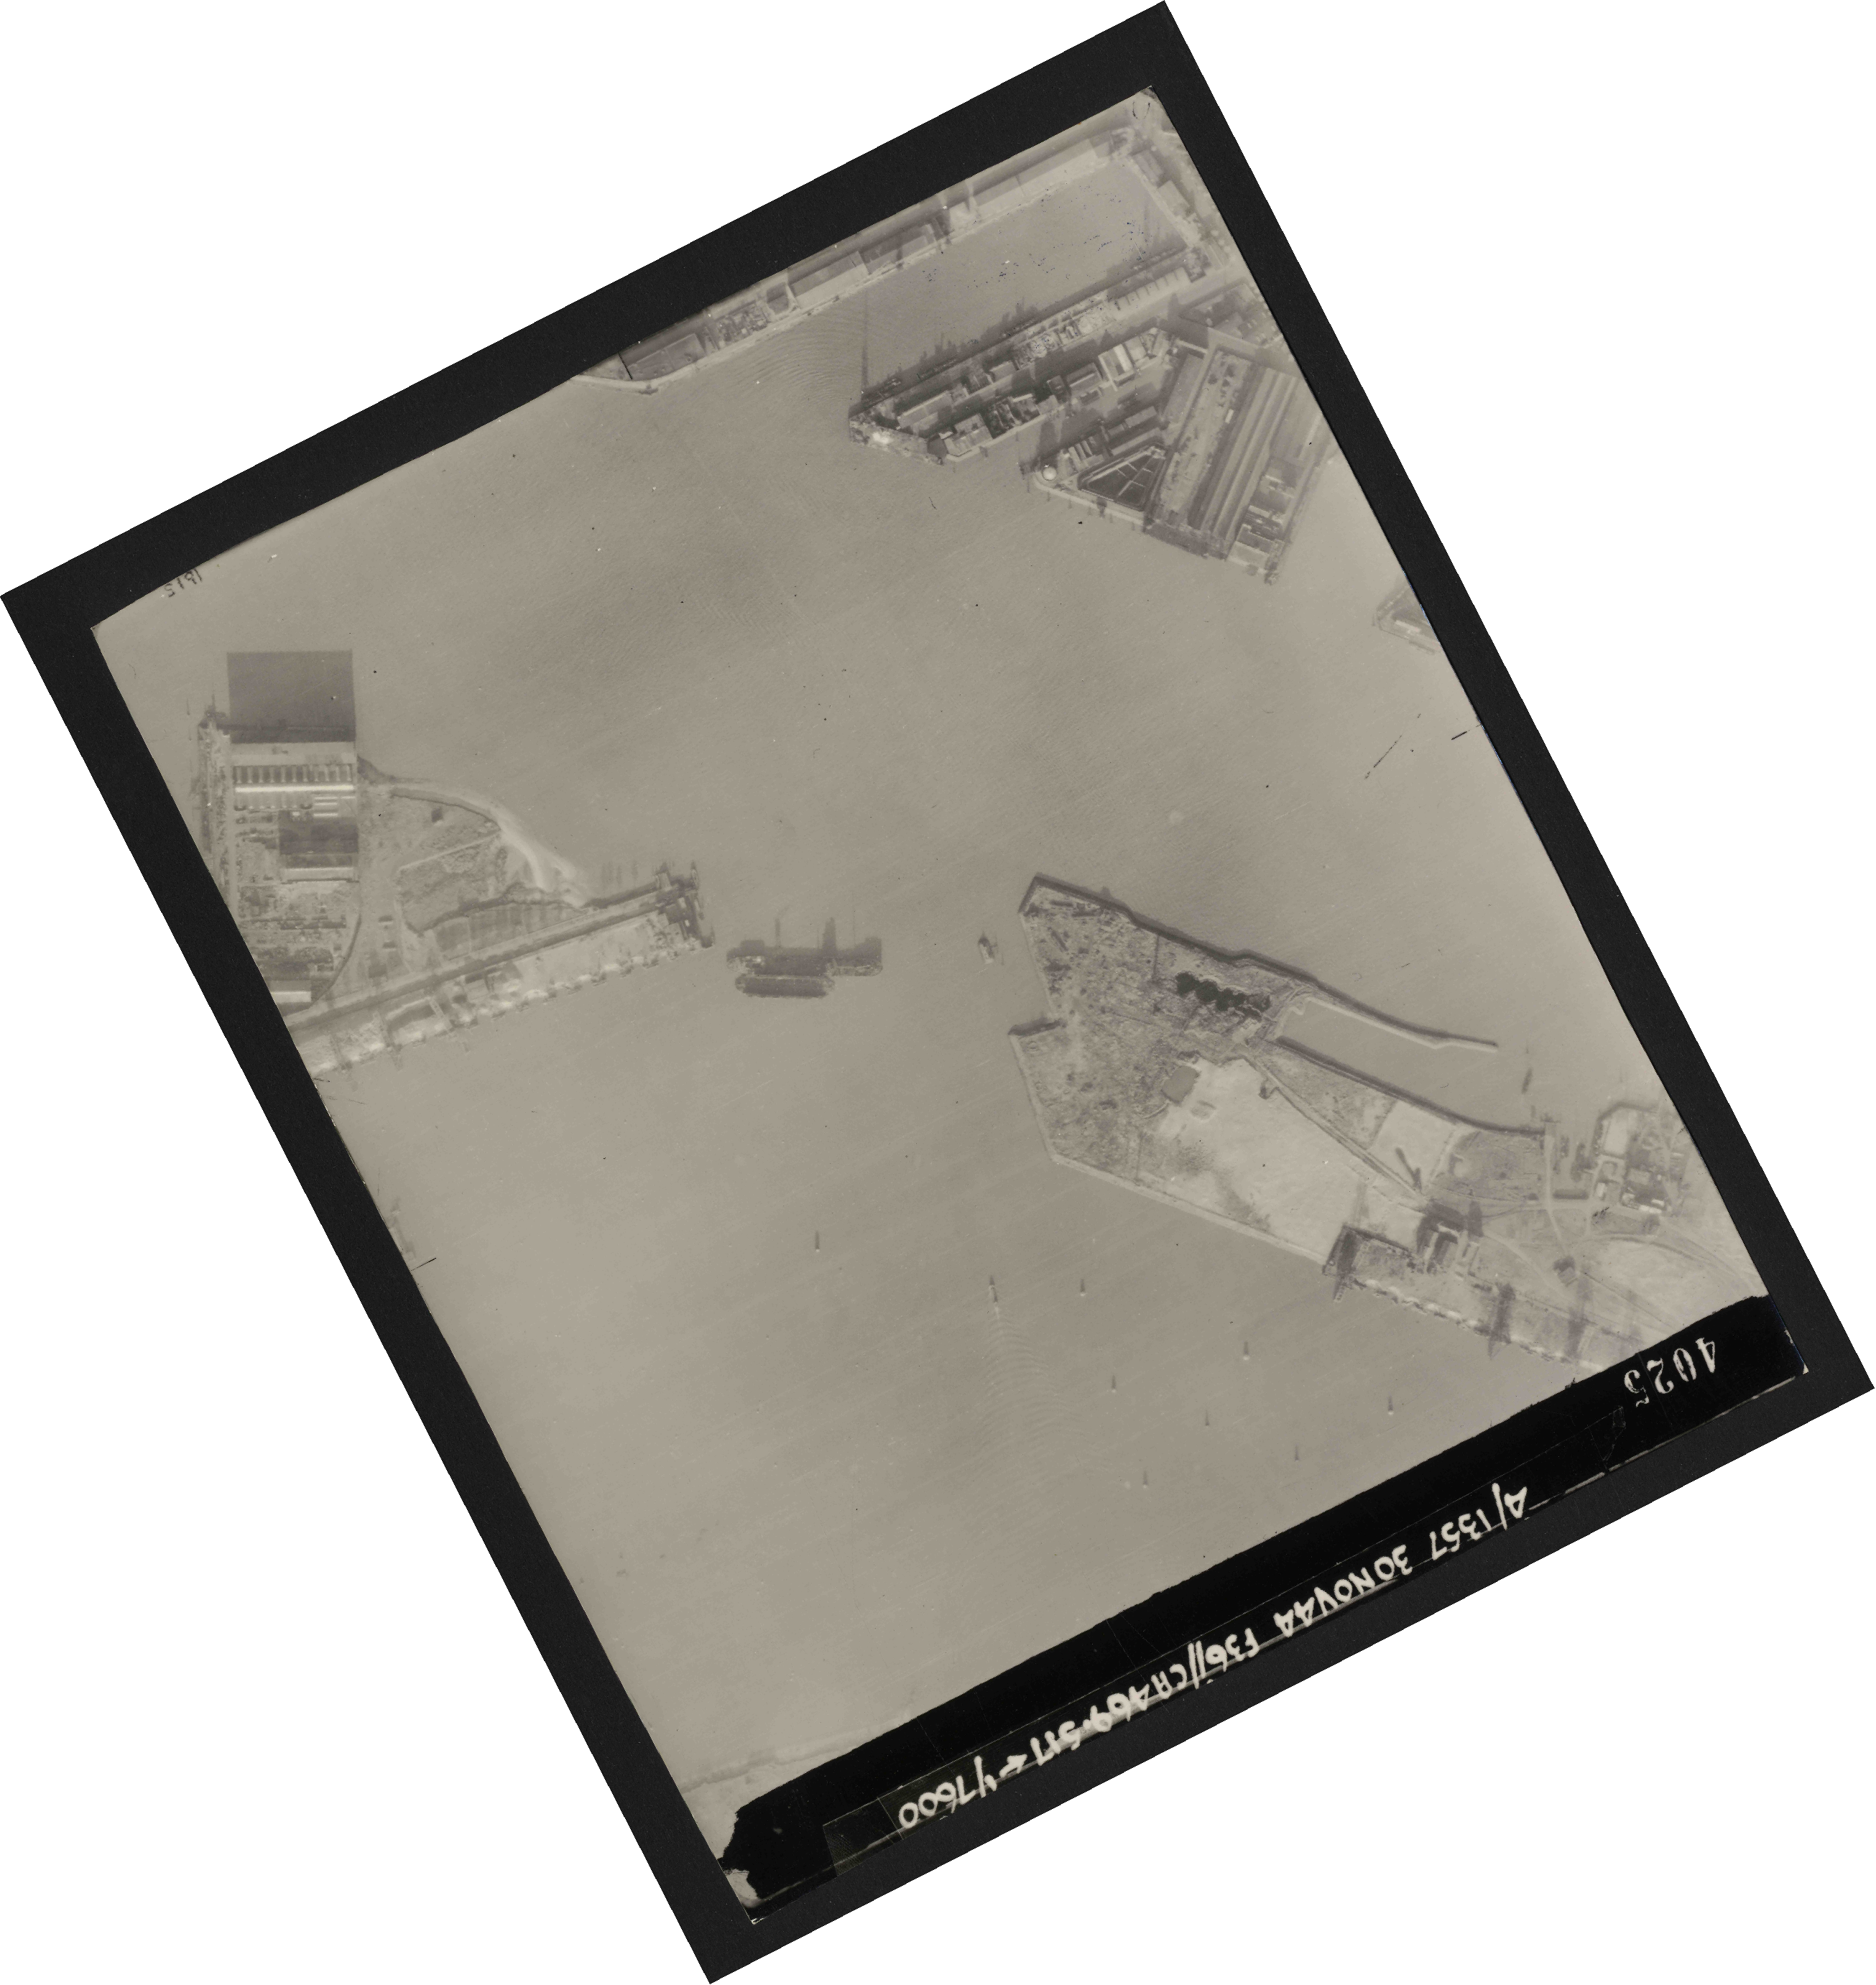 Collection RAF aerial photos 1940-1945 - flight 259, run 04, photo 4025